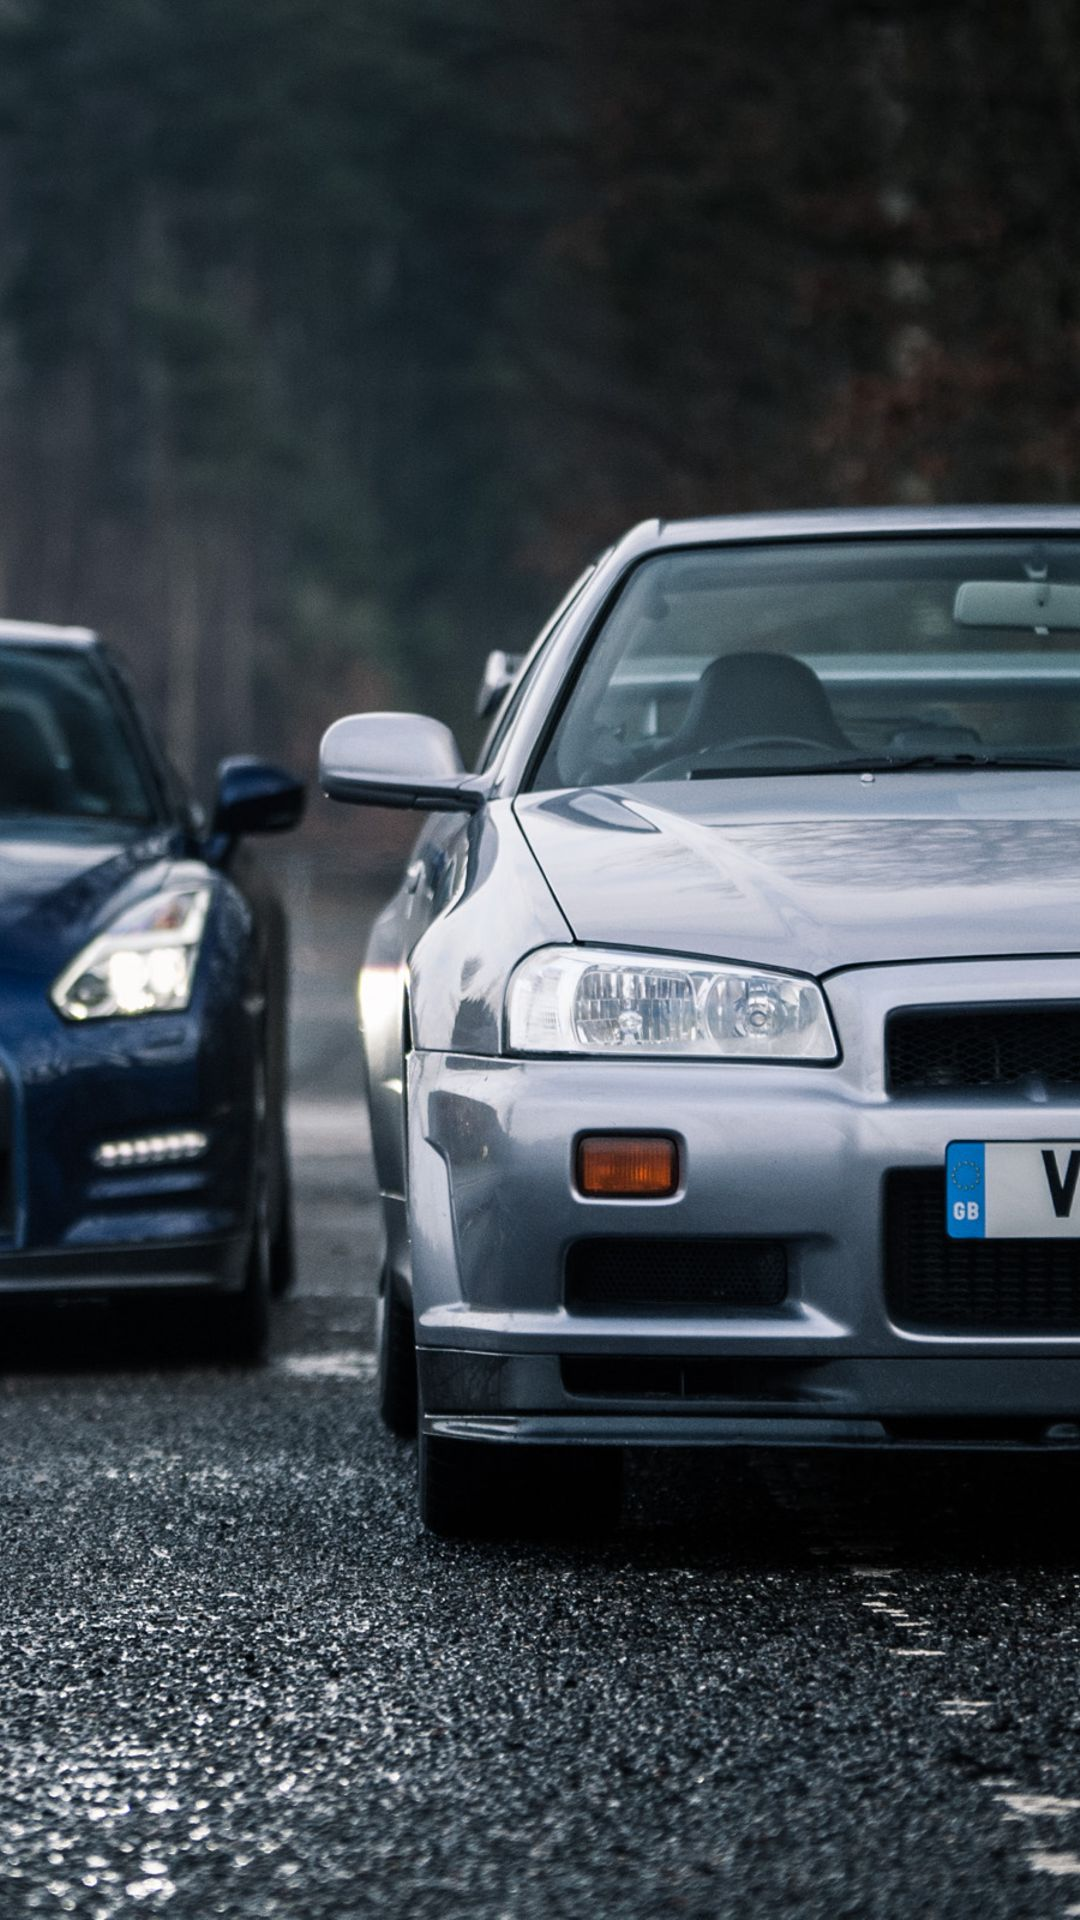 Nissan R34 Skyline Gt R Vs R35 Gt R Downloadable Image Gallery Part 3